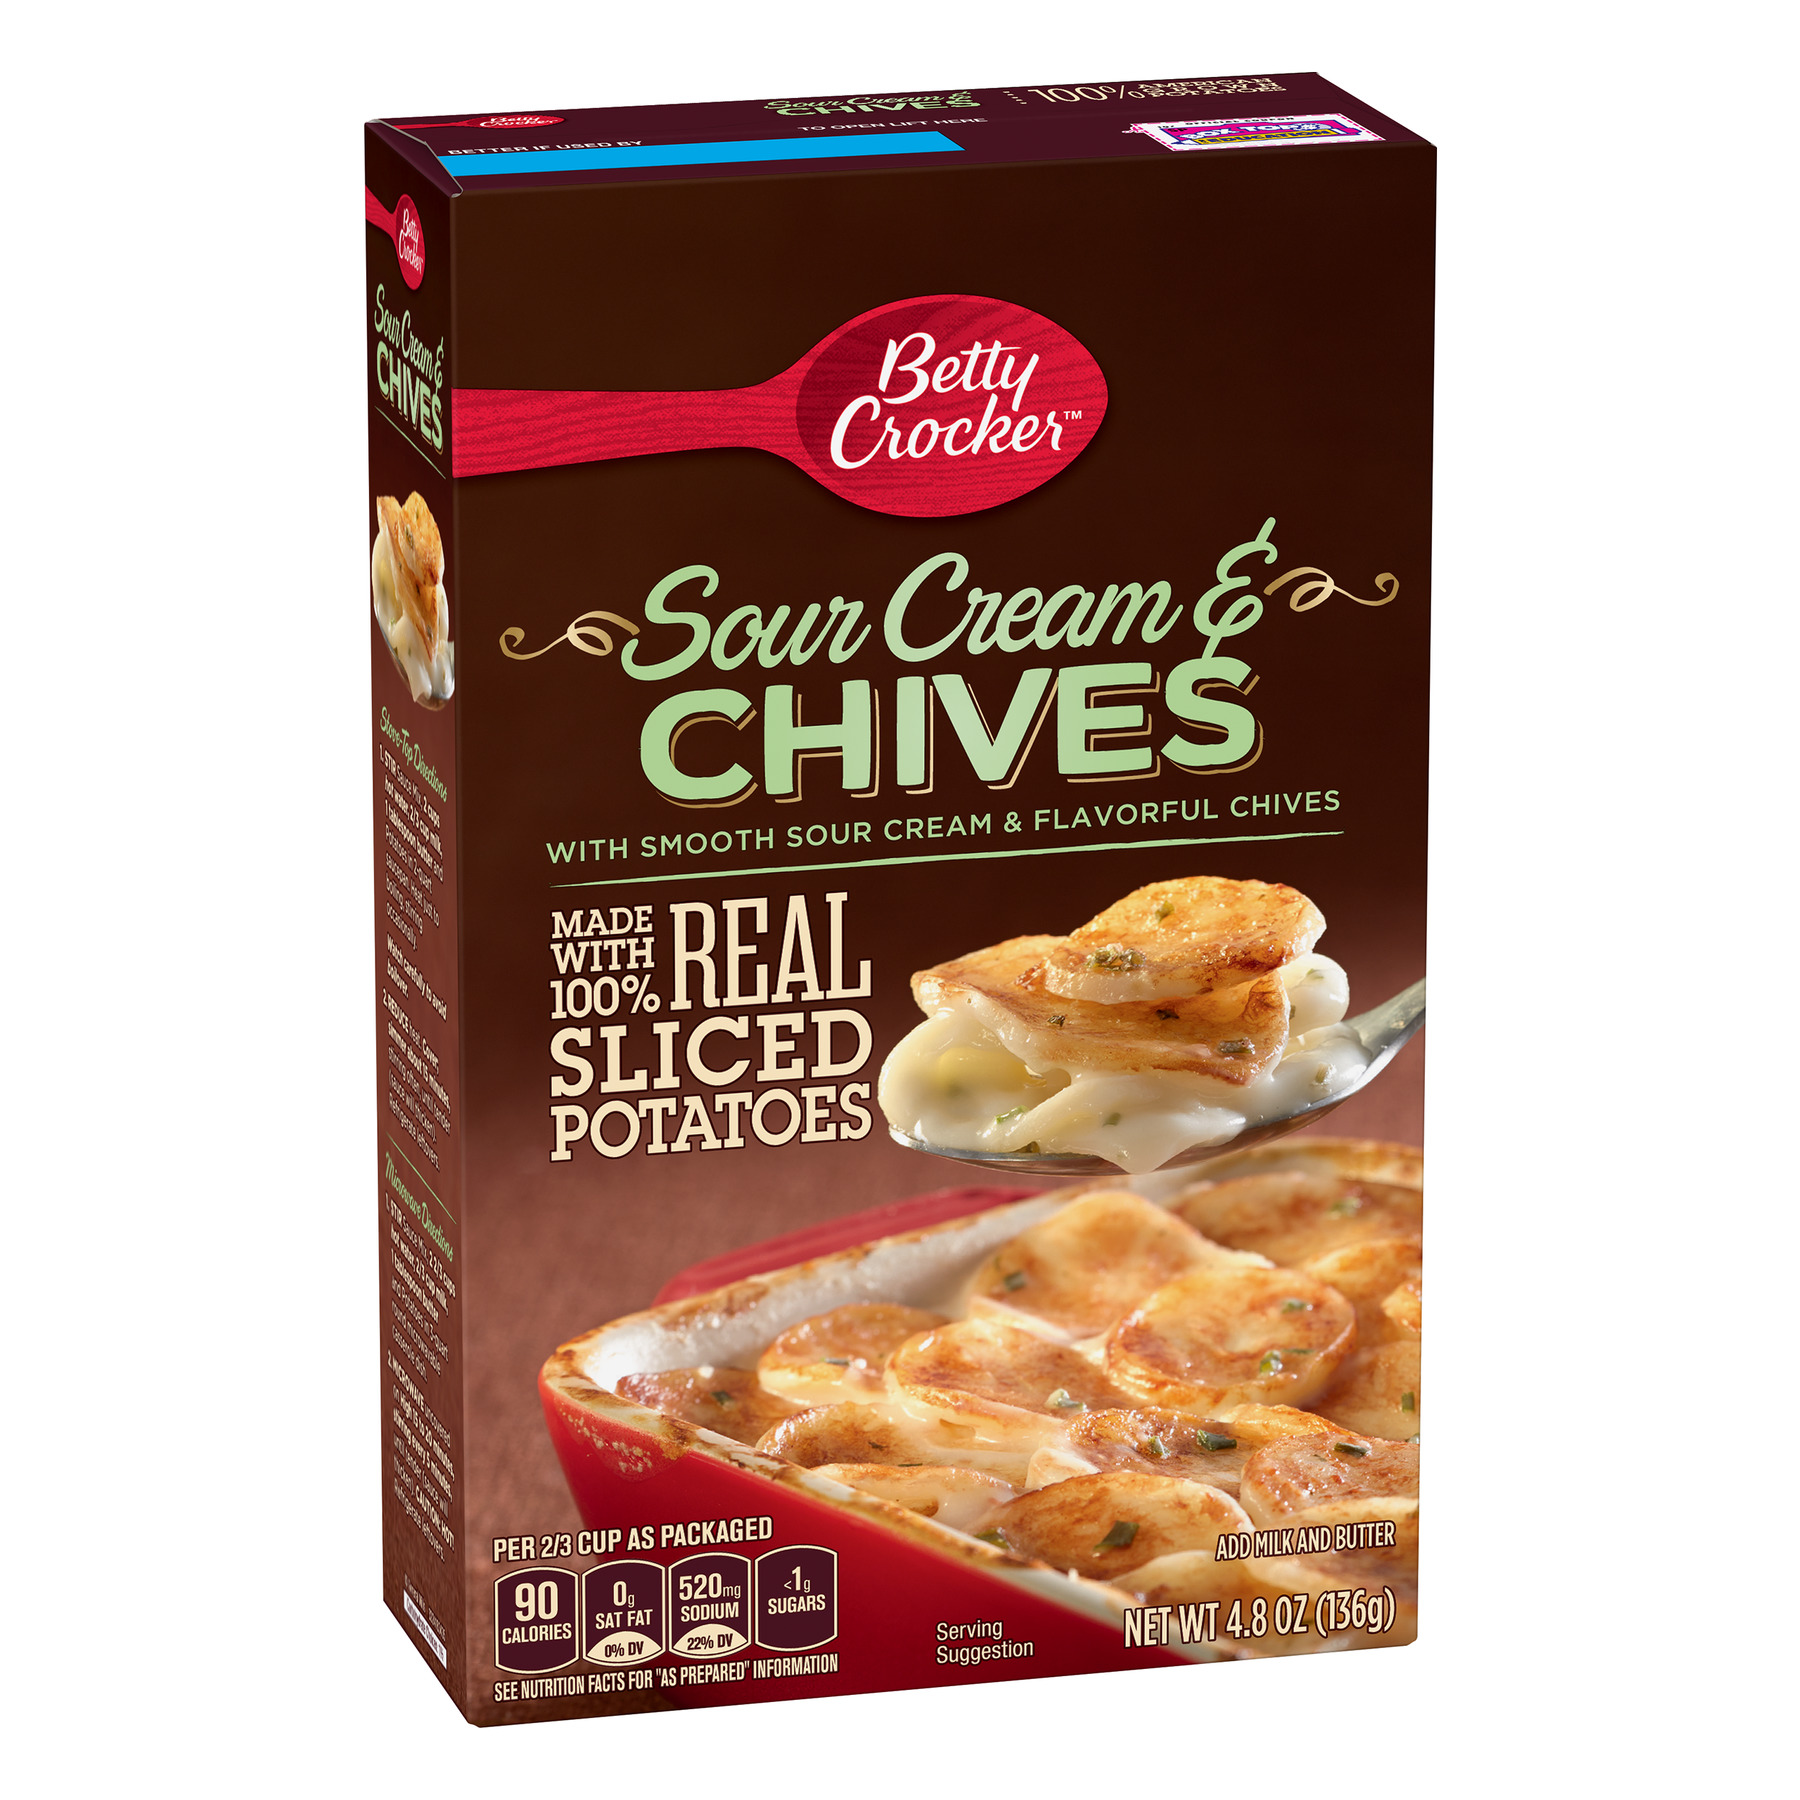 Betty Crocker Sour Cream and Chives Potatoes, 4.8 oz